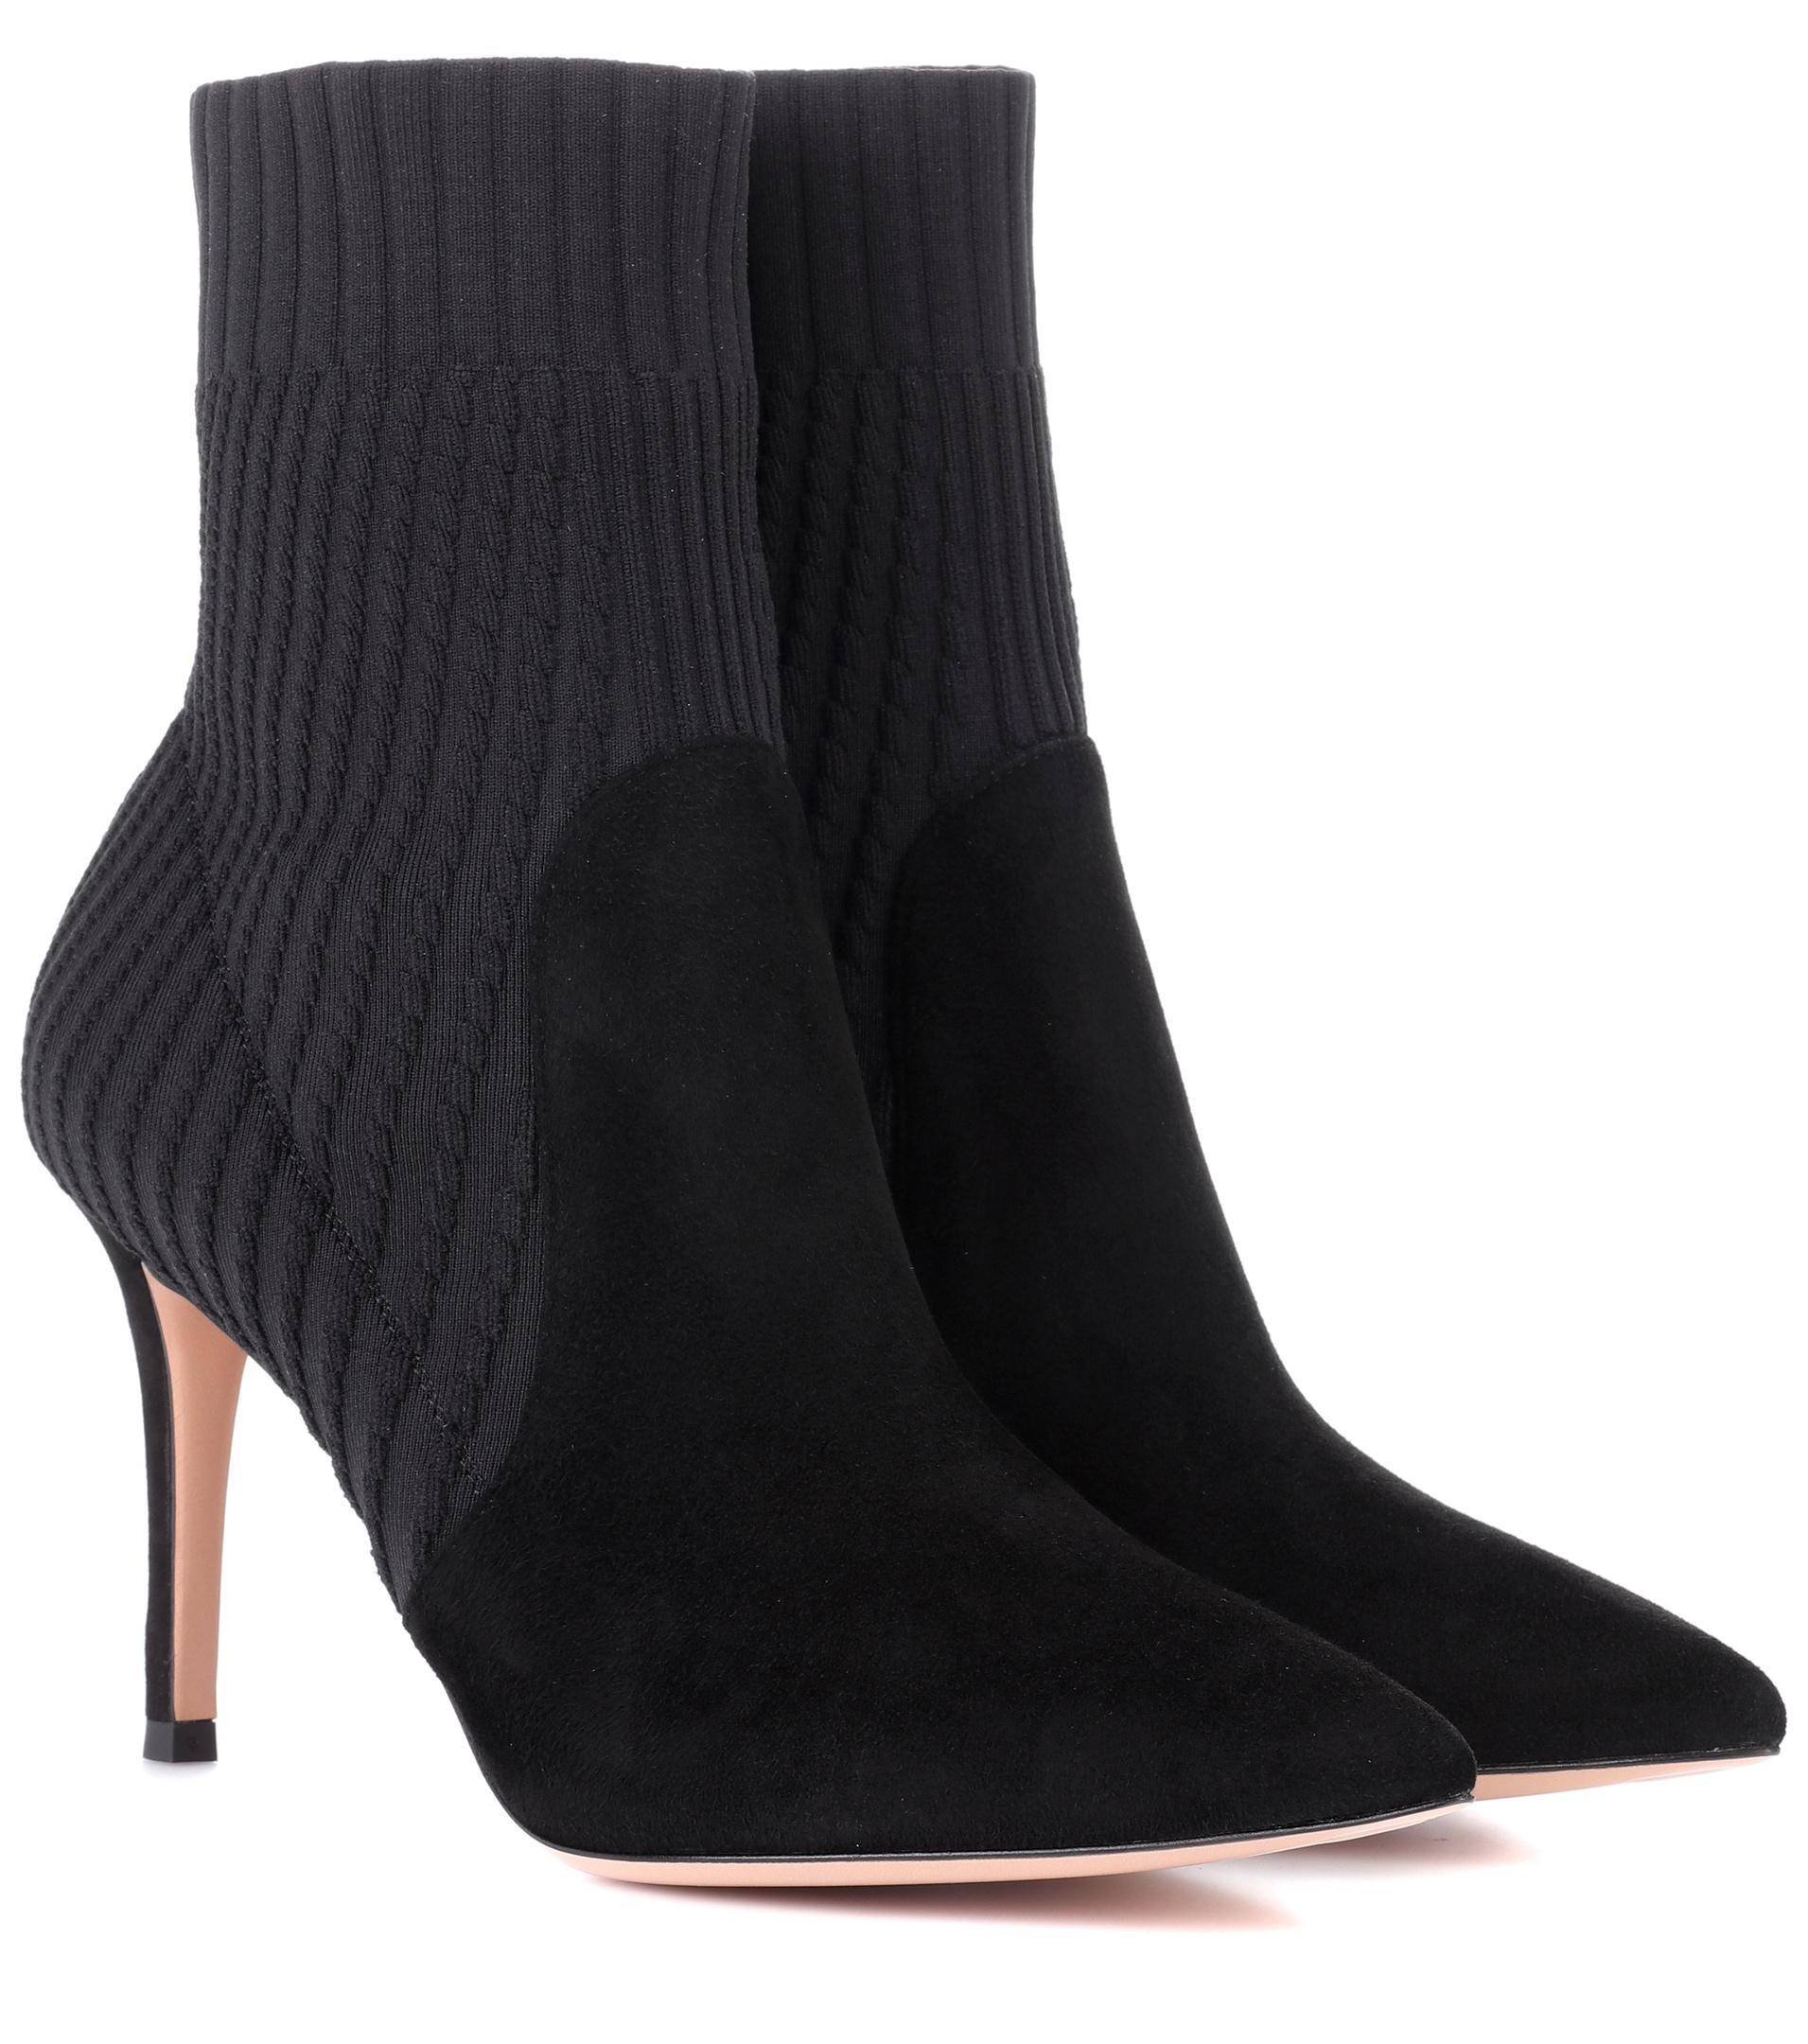 Free Shipping Outlet Locations Katie 105 Black Knit Booties Gianvito Rossi Free Shipping Cheap Price Factory Outlet Online Wiki For Sale Pre Order 6AP2wGi